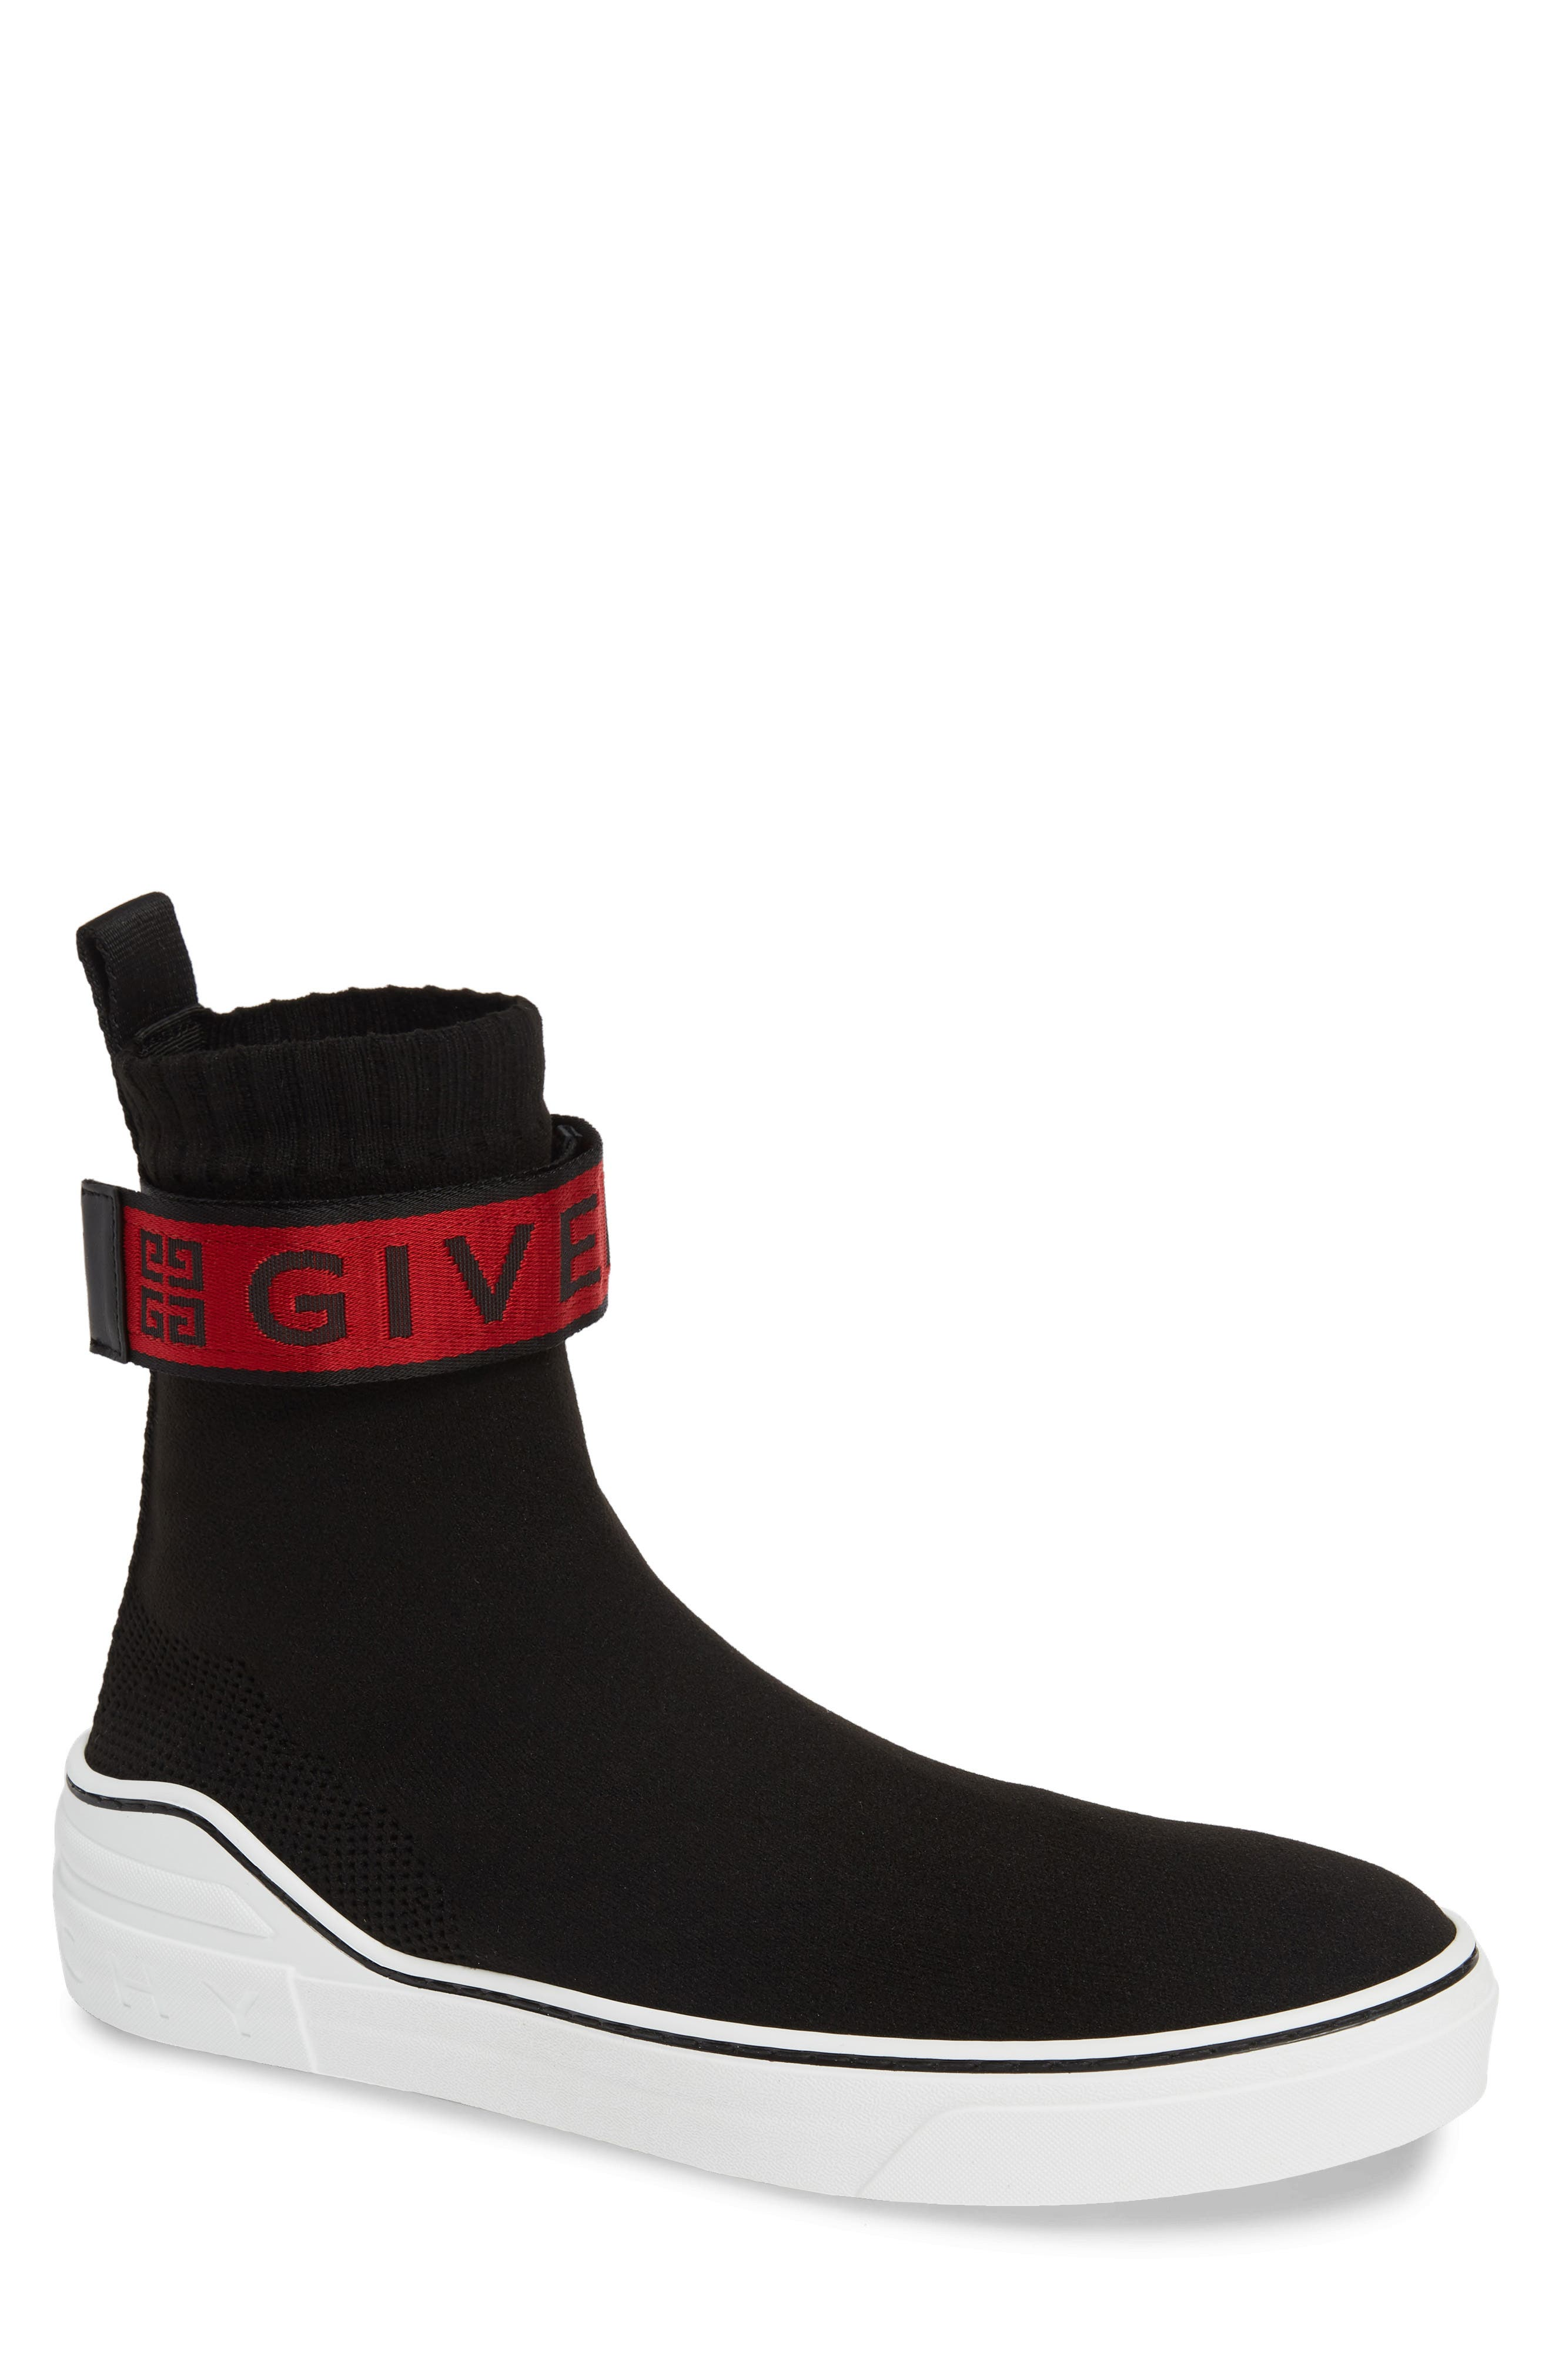 GIVENCHY George V Sneaker, Main, color, 009